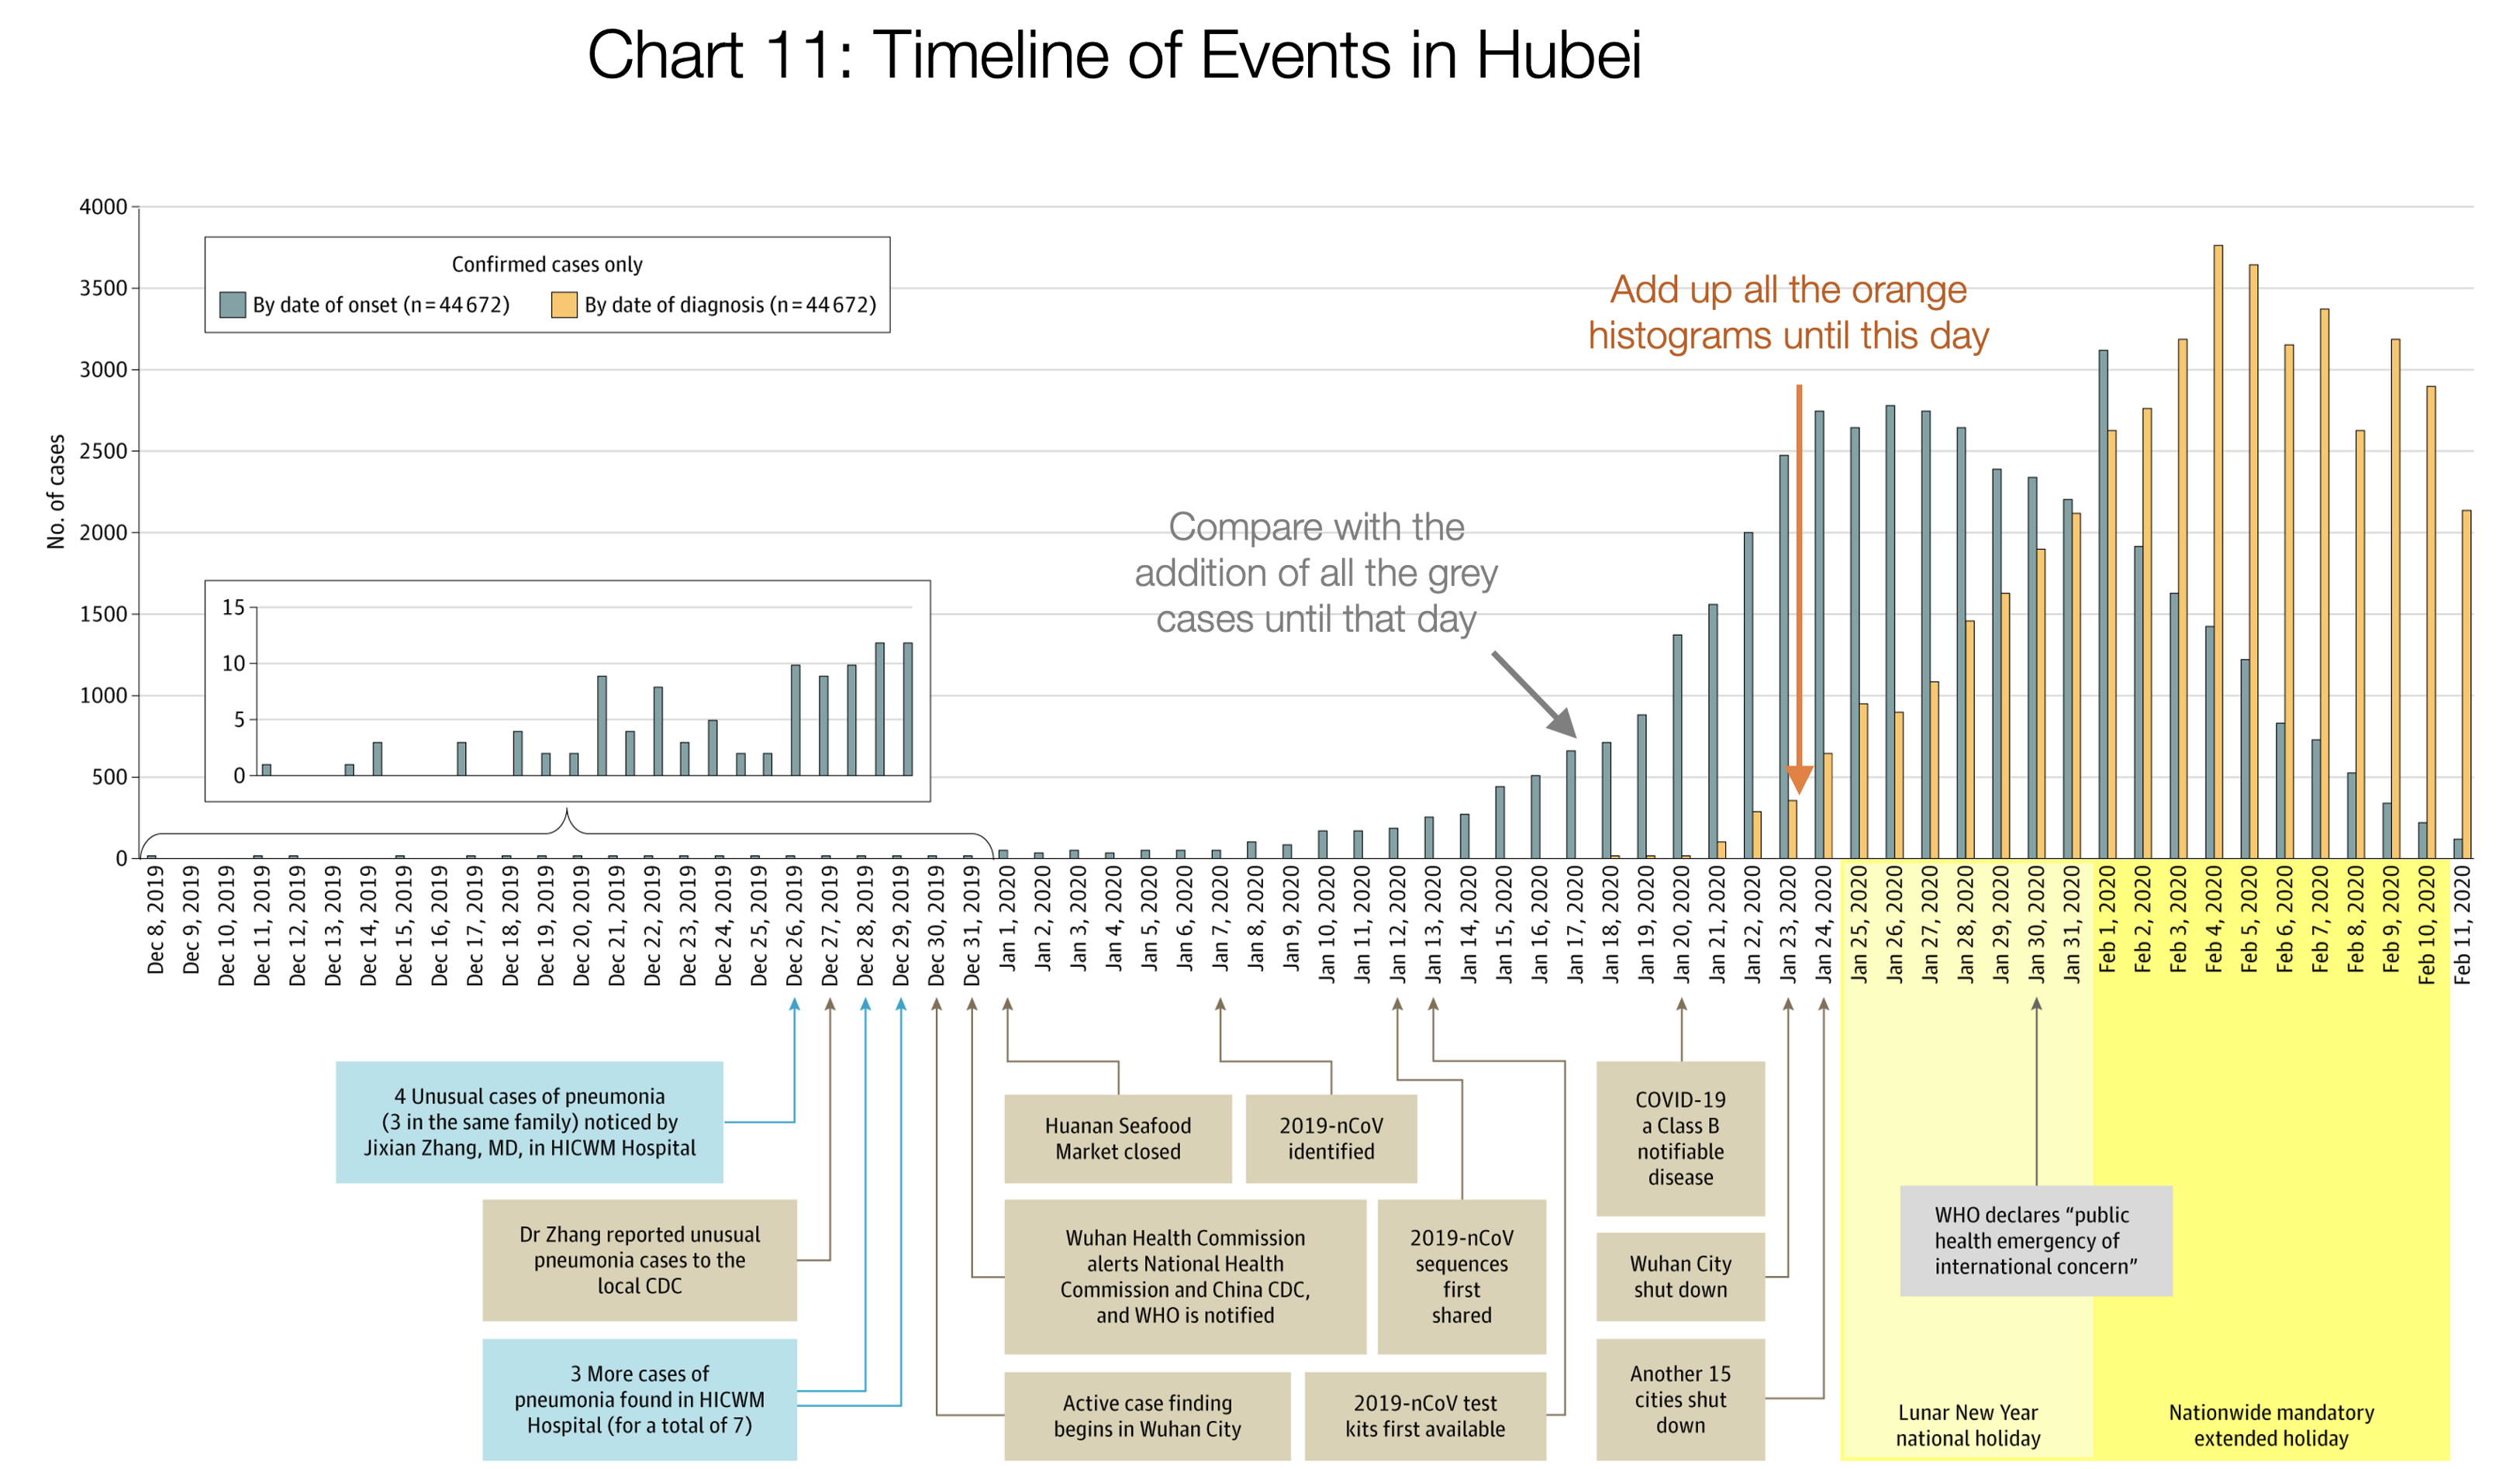 11. Timeline of Events in Hubei